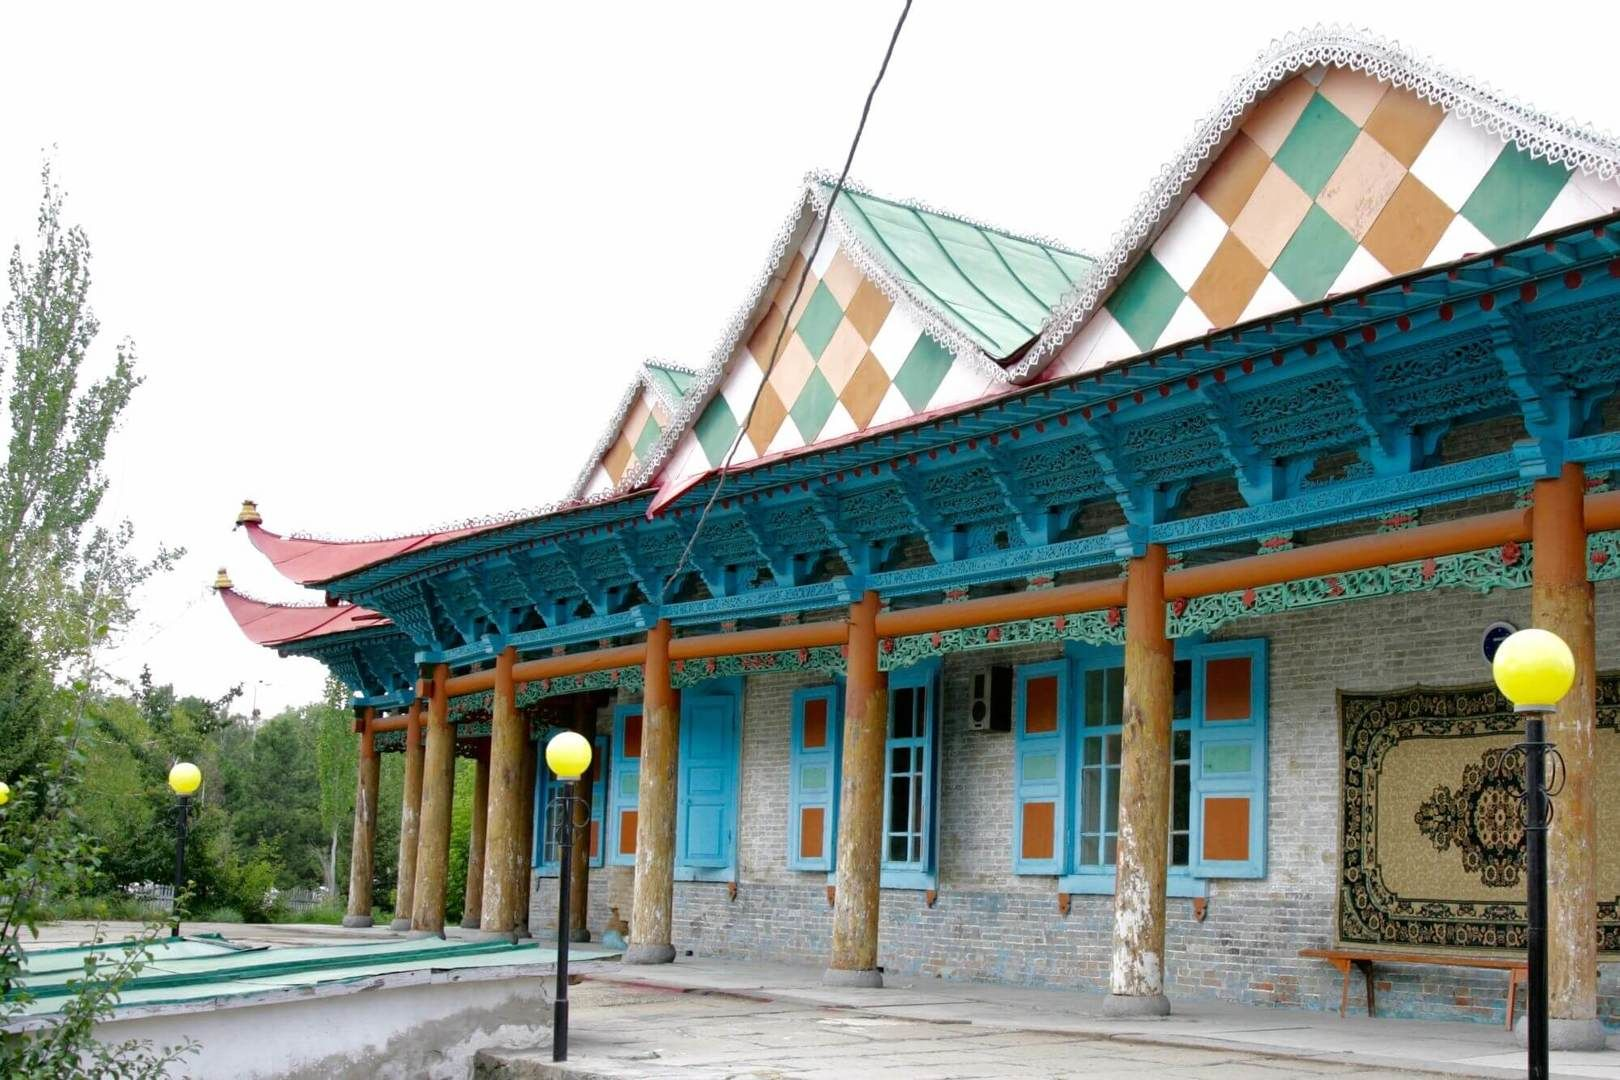 colorfu wooden mosque of dungans is the highlight of karakol in Kyrgyzstan